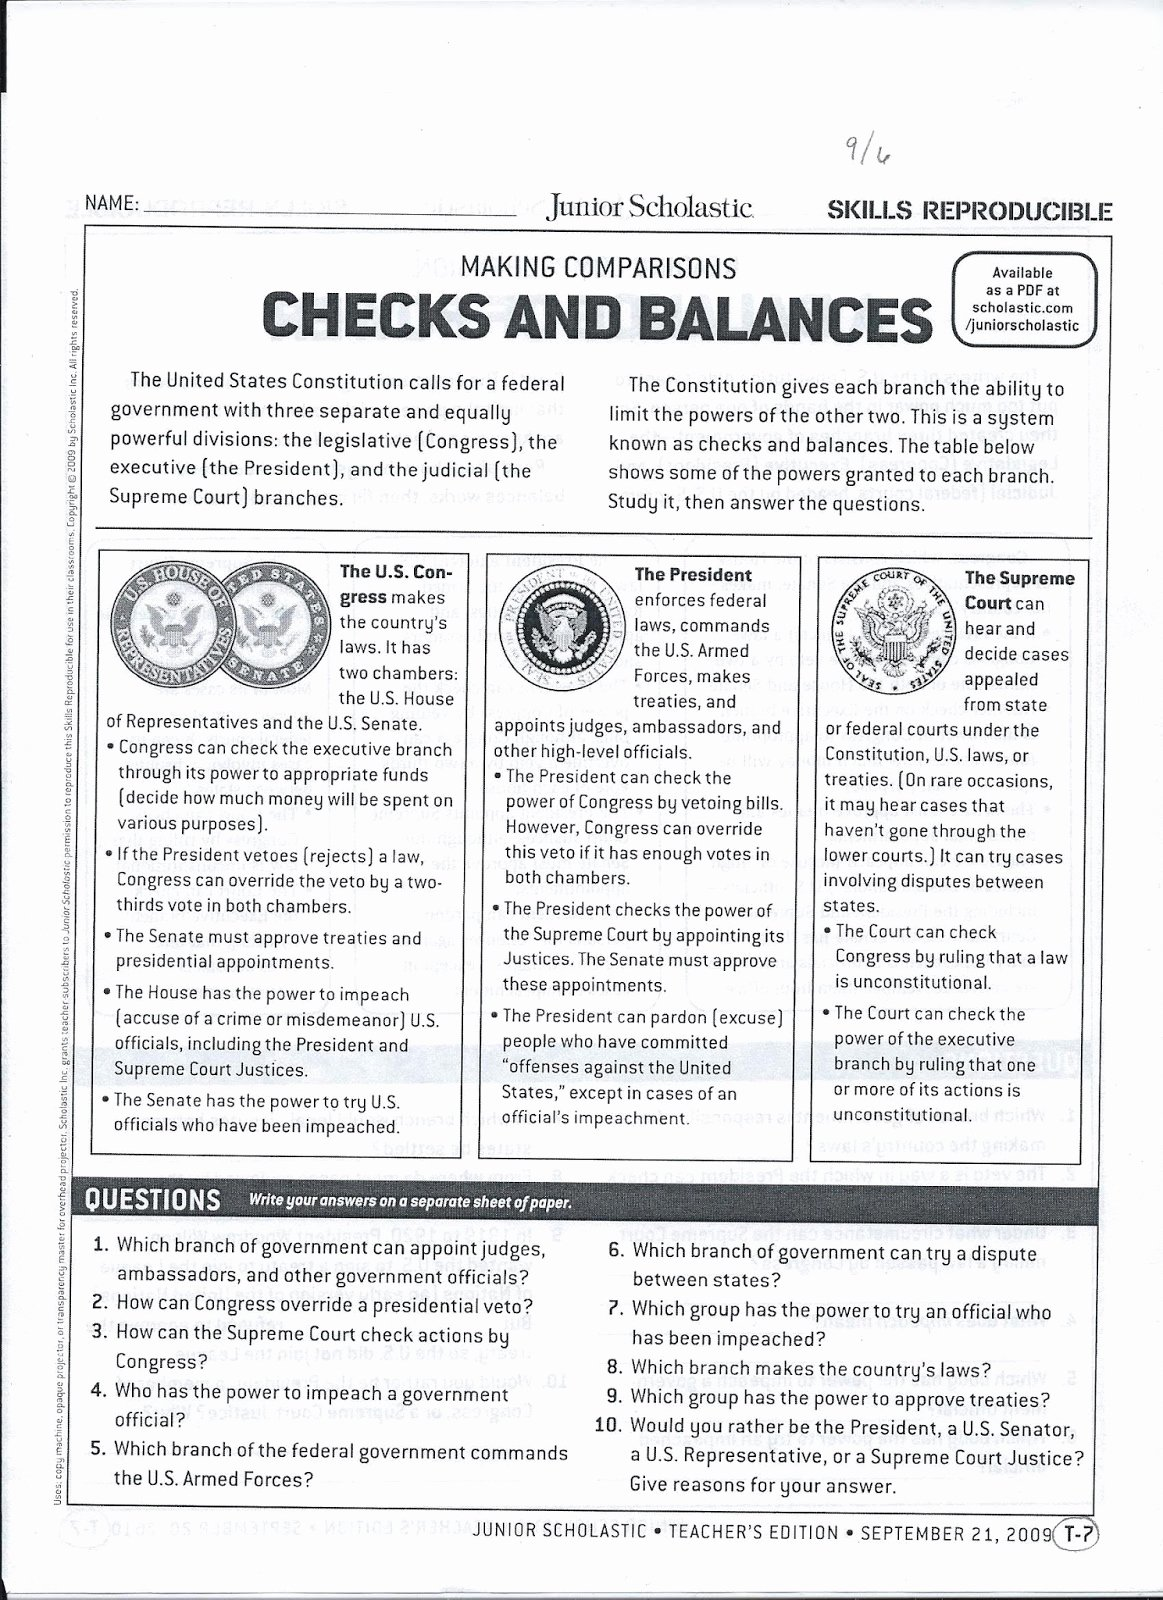 Checks and Balances Worksheet Answers Fresh Gms 6th Grade social Stu S Checks and Balances